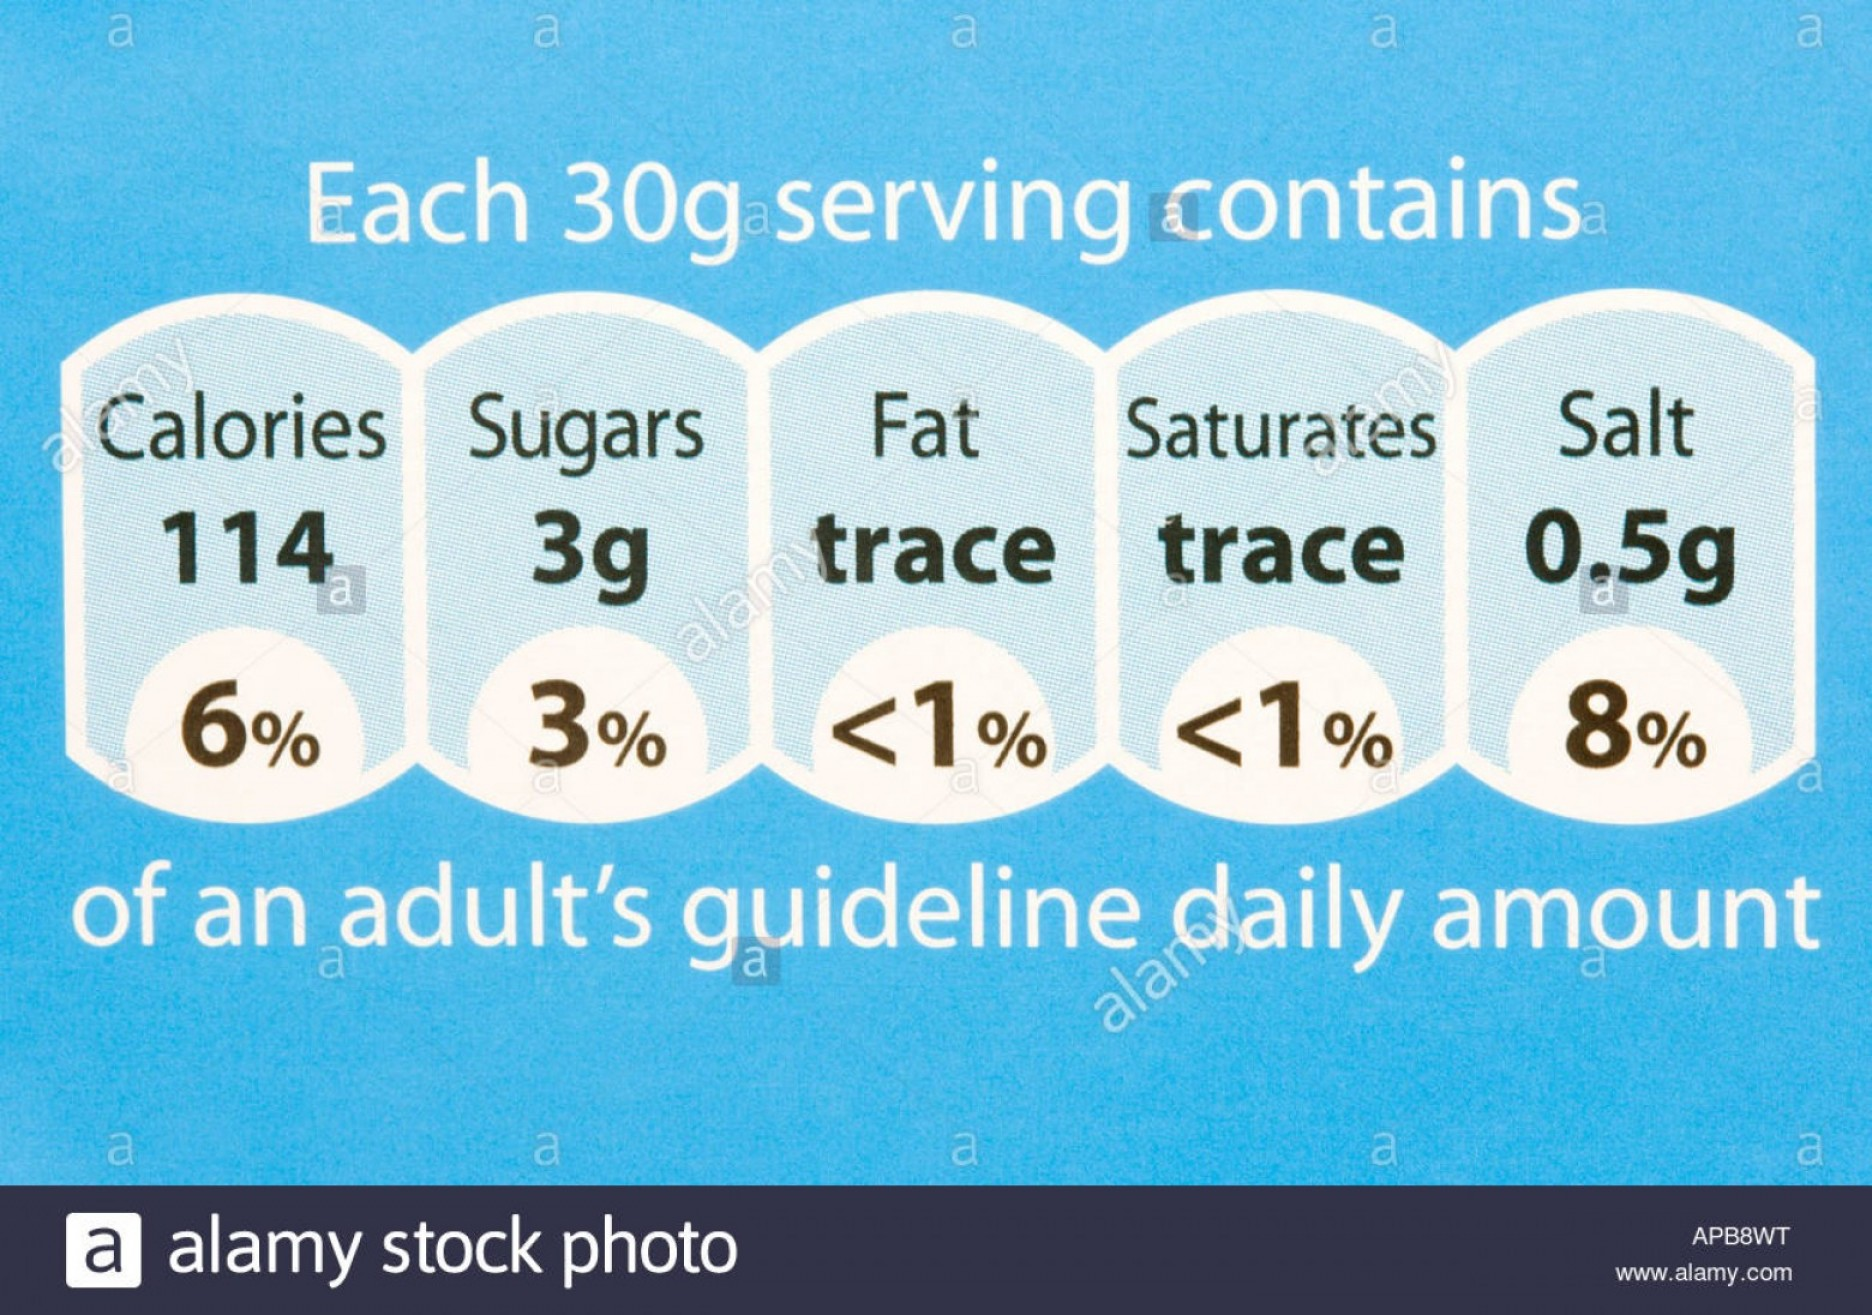 1872x1315 Stock Photo Nutritional Information On Cereal Box Orangiausa